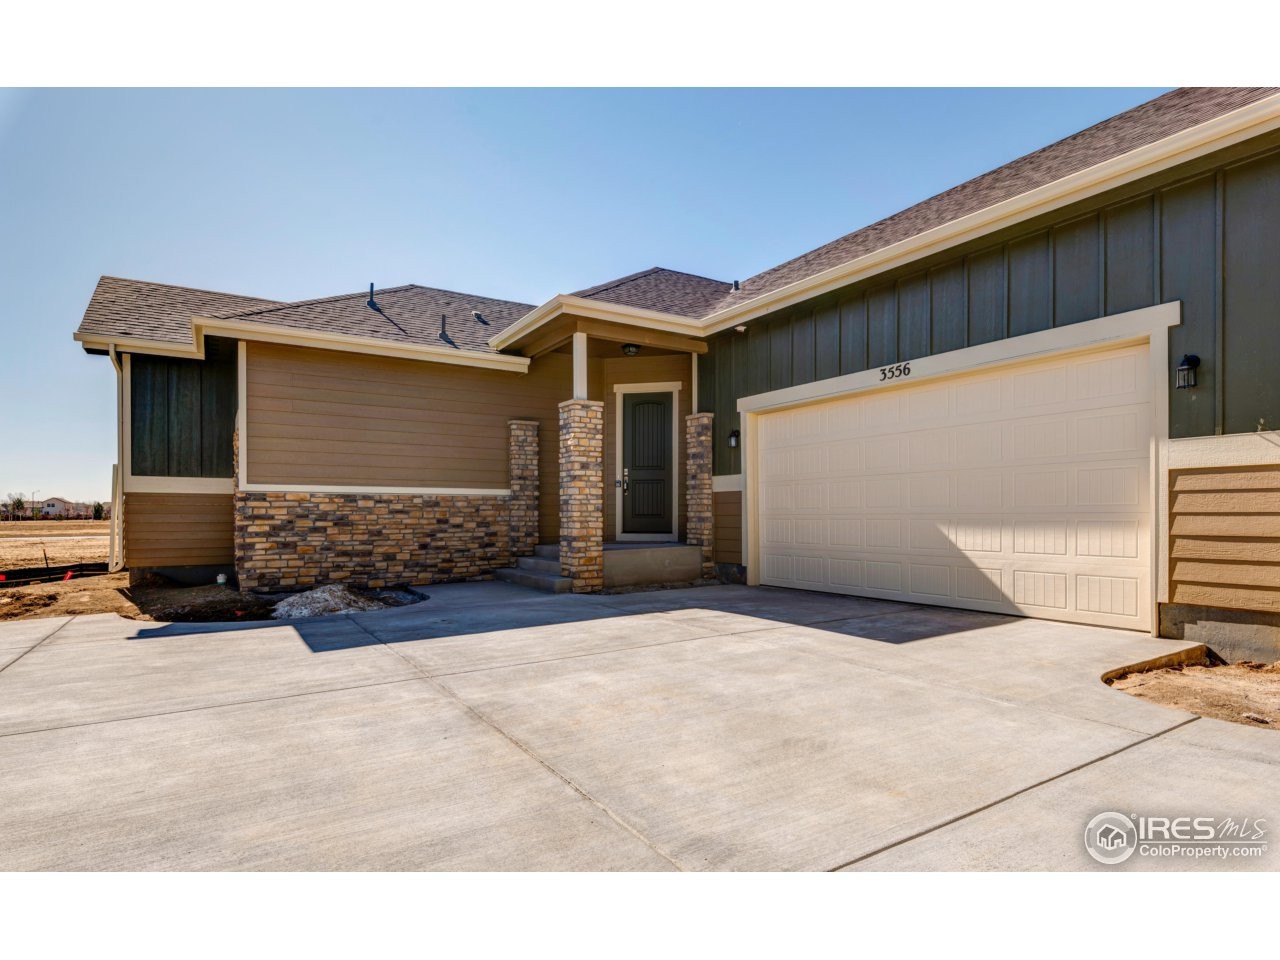 3556 Prickly Pear Dr, Loveland CO 80537